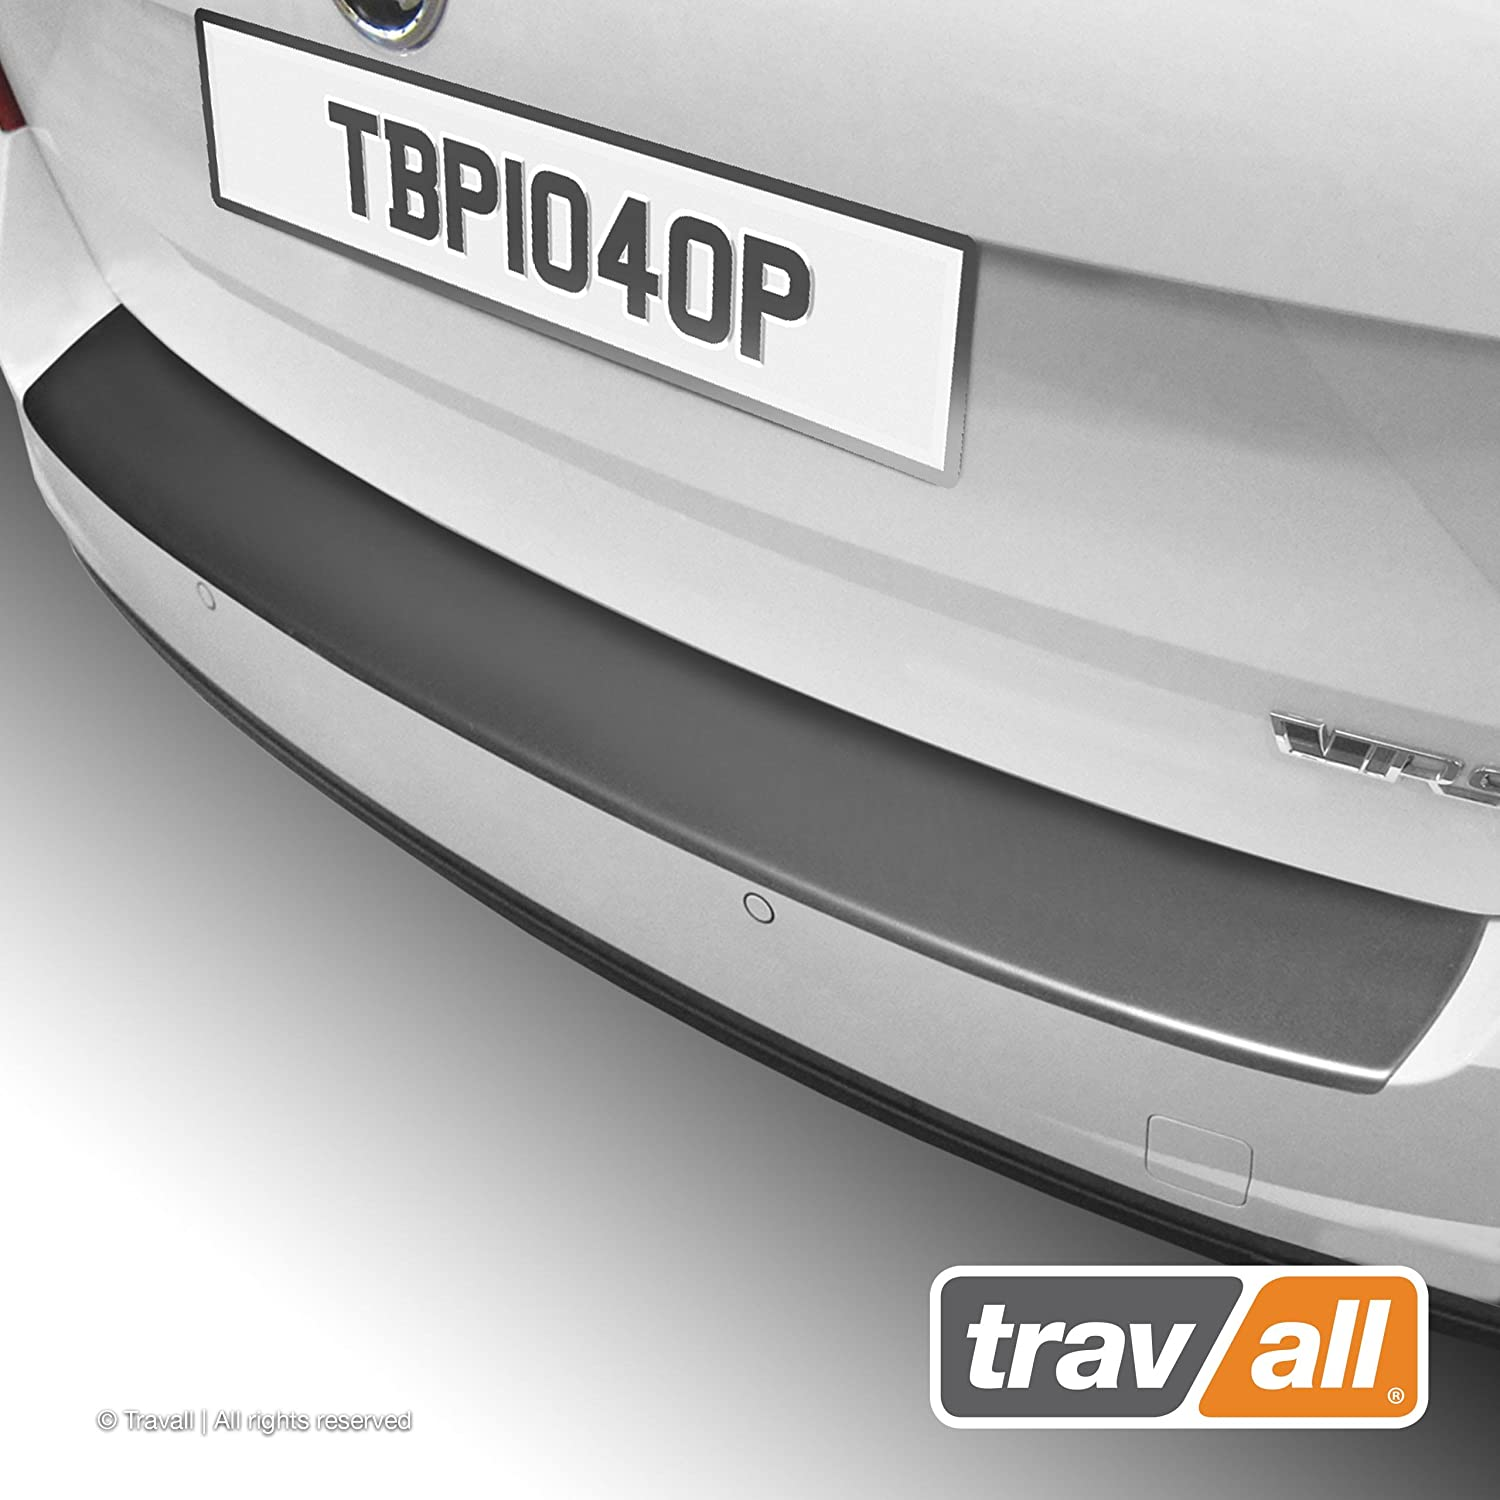 Travall Protector TBP1040P - Vehicle-Specific Black Plastic Moulded Rear Bumper Protector [Smooth]